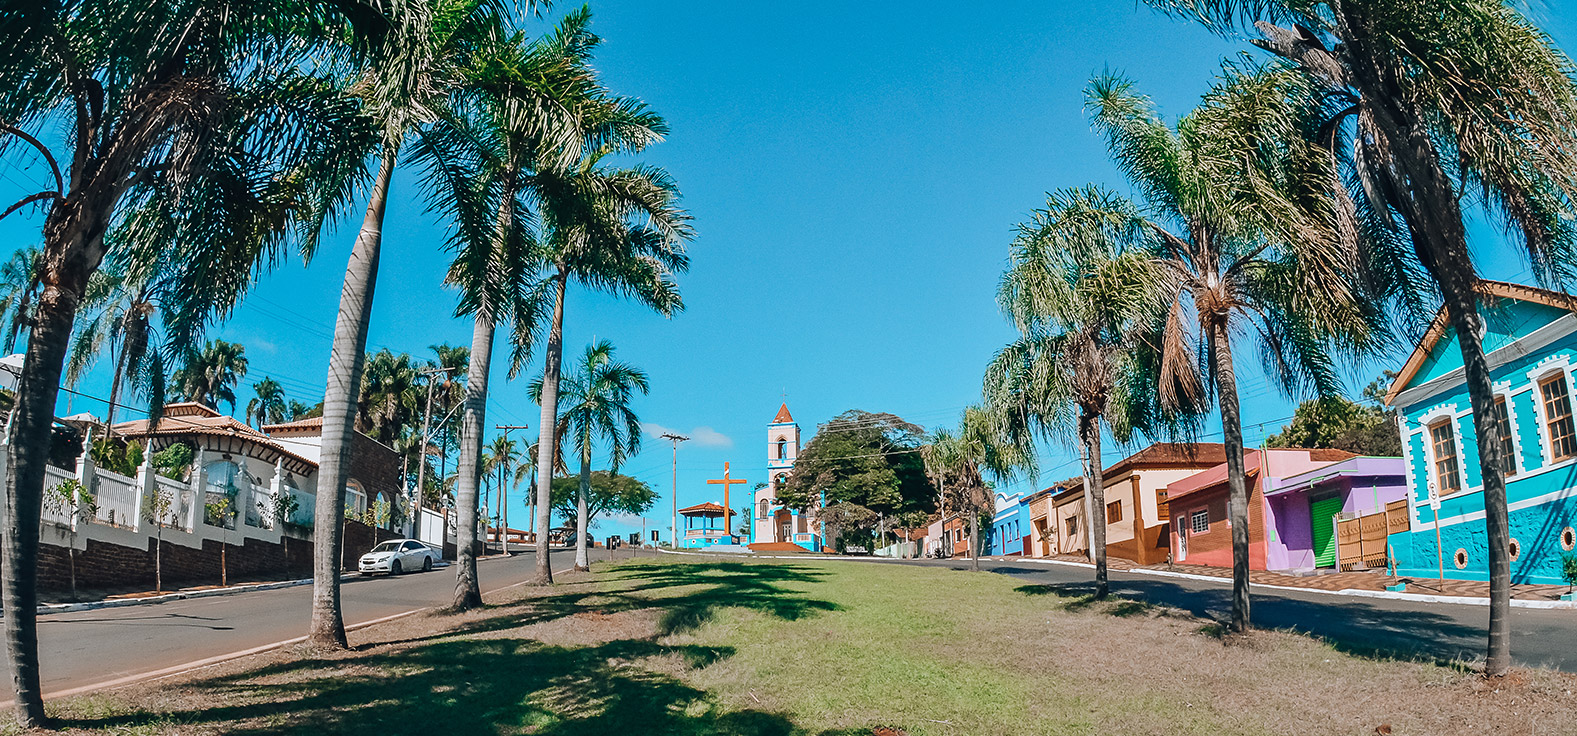 Largo da Santa Cruz em Brotas | Portal Serra do Itaquerí